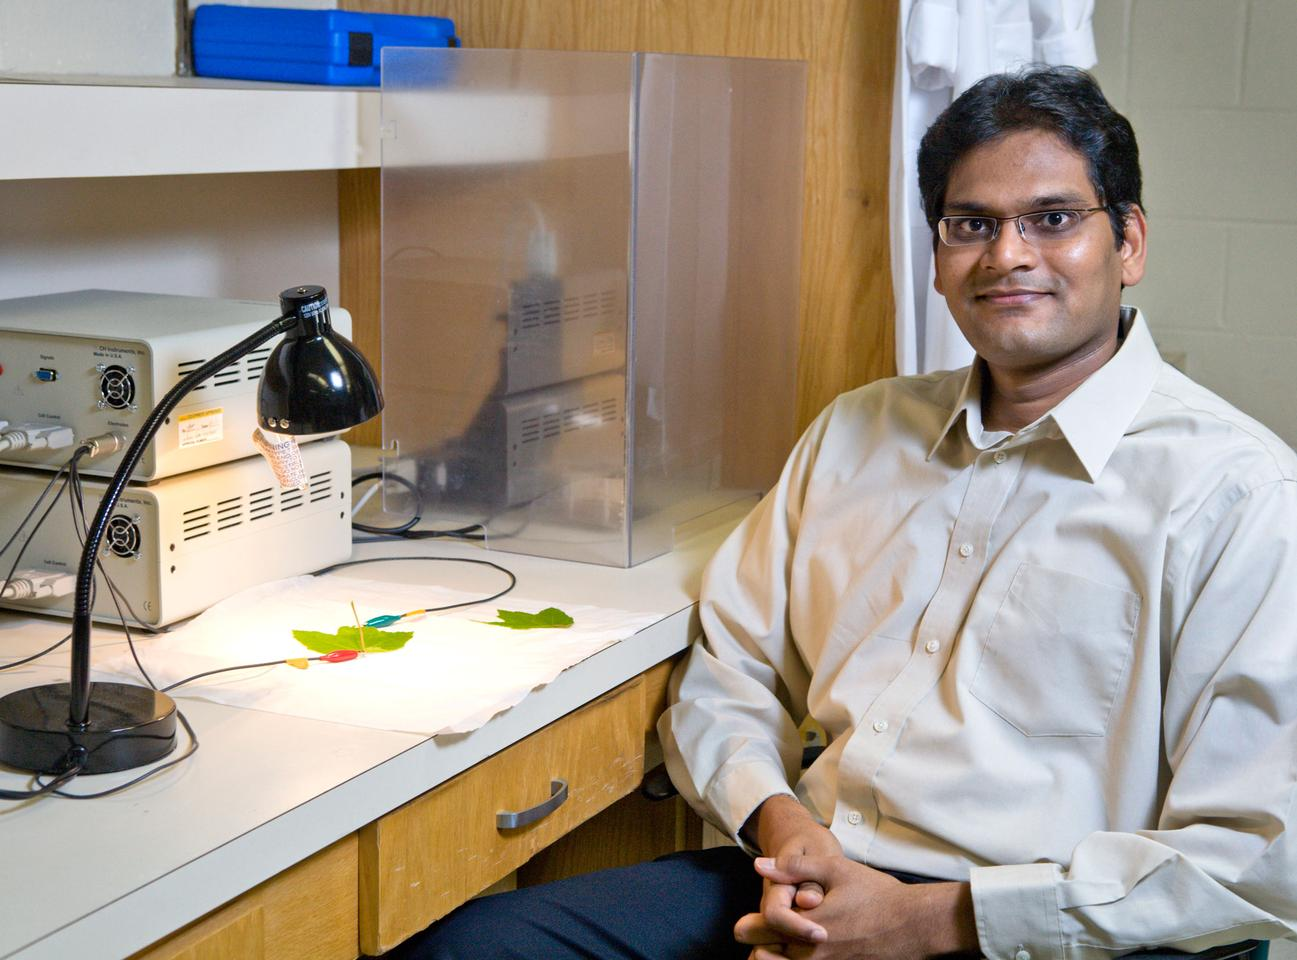 Ramaraja Ramasamy is developing technology to steal energy plants create during photosynthesis